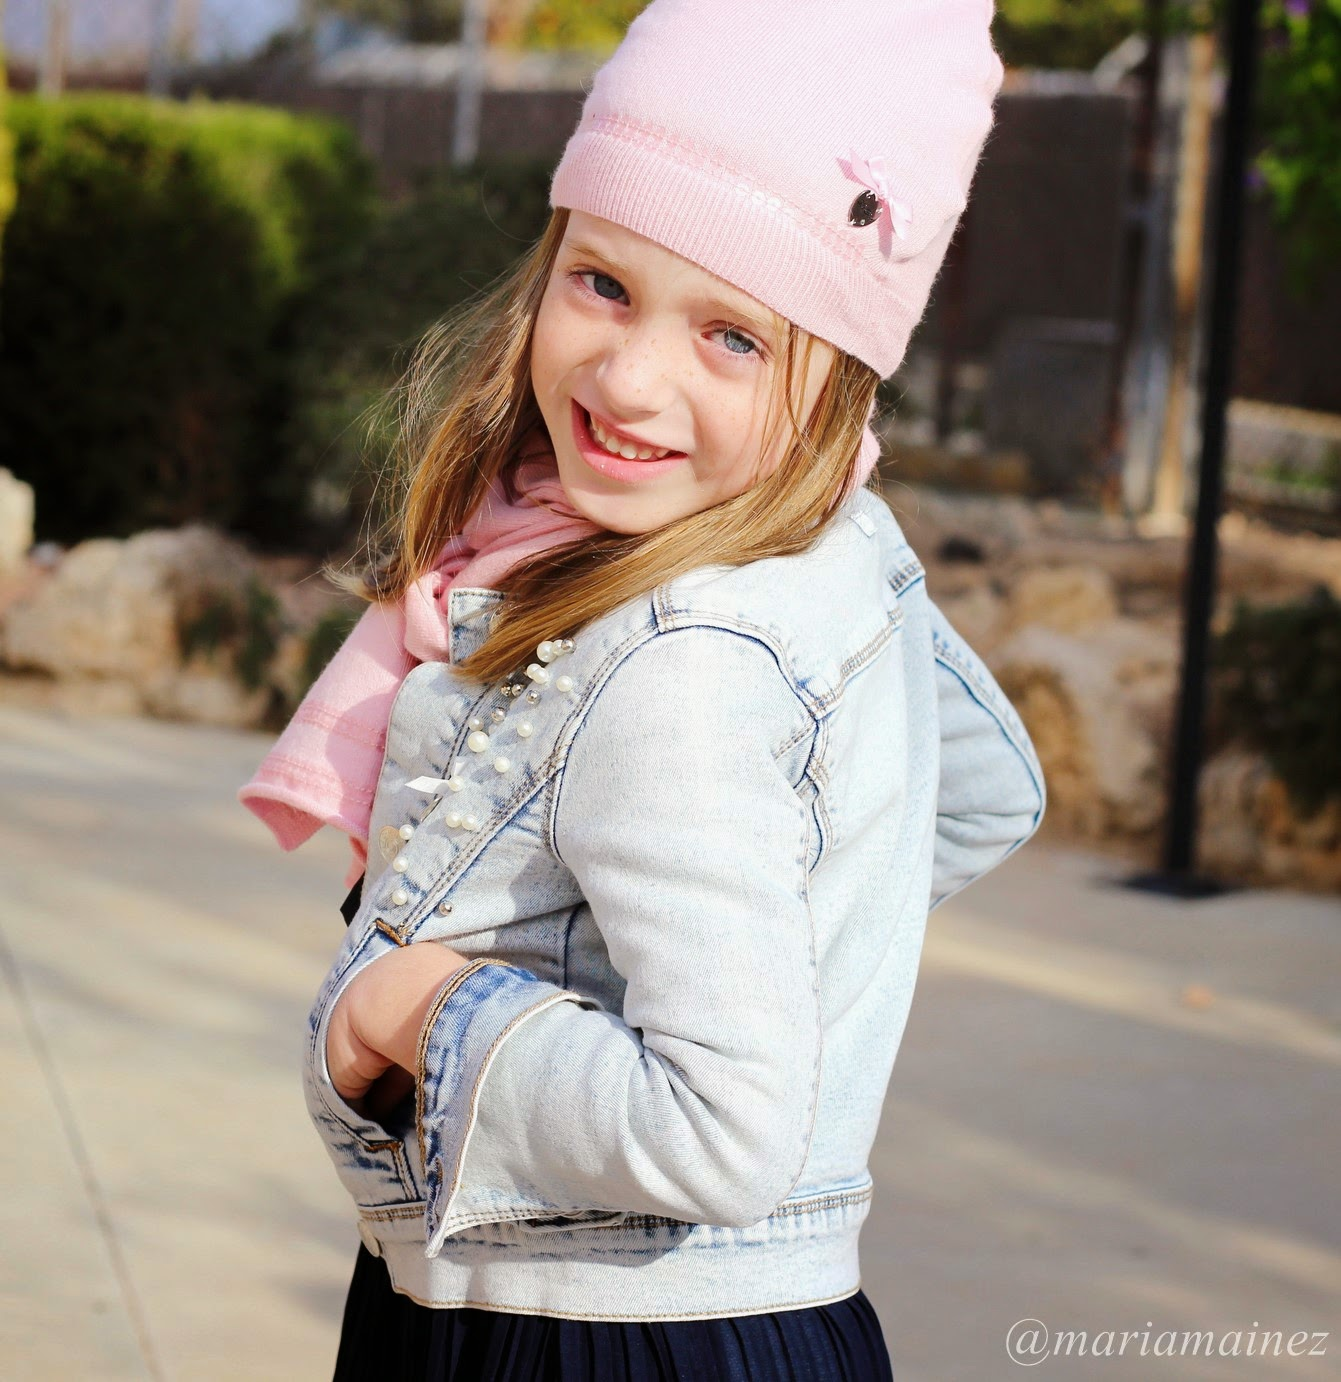 Le Chic - Fashion kids - Fashion kids bloggers - Little Blogger - Alicante - Streetstyle